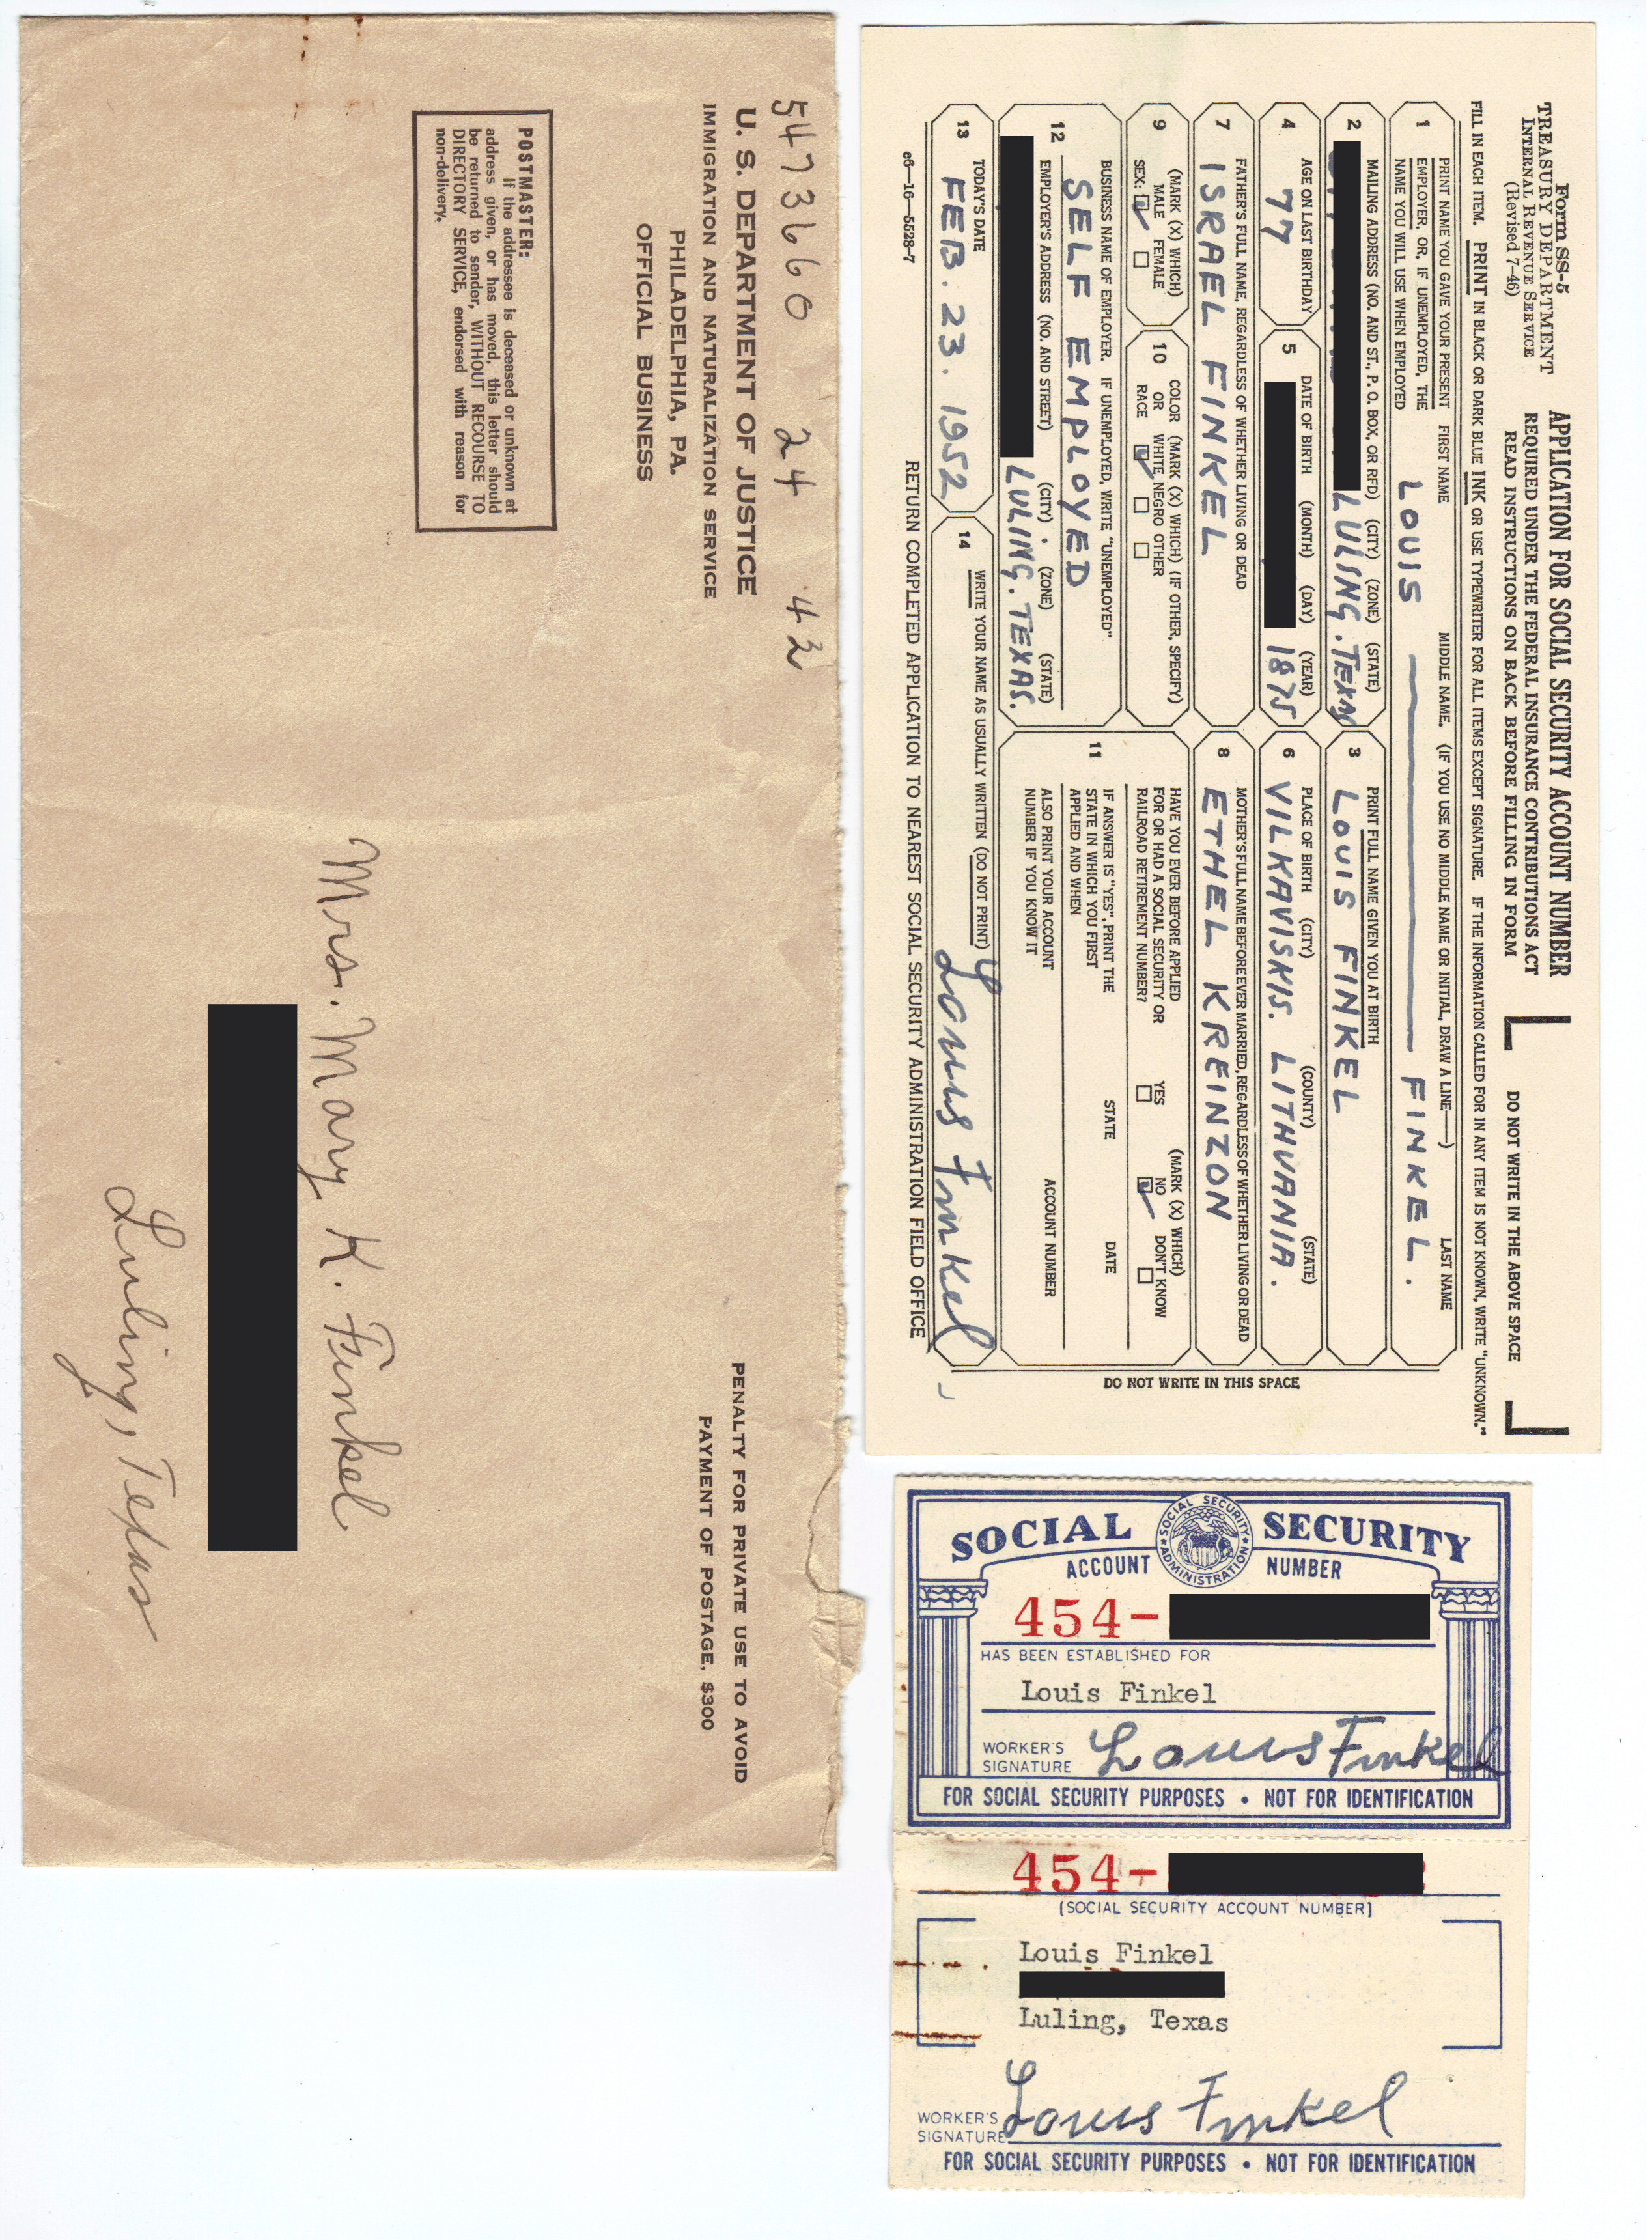 Object: Social Security card (USA Social Security Card and Application)   UTSA Institute Of Texan Cultures